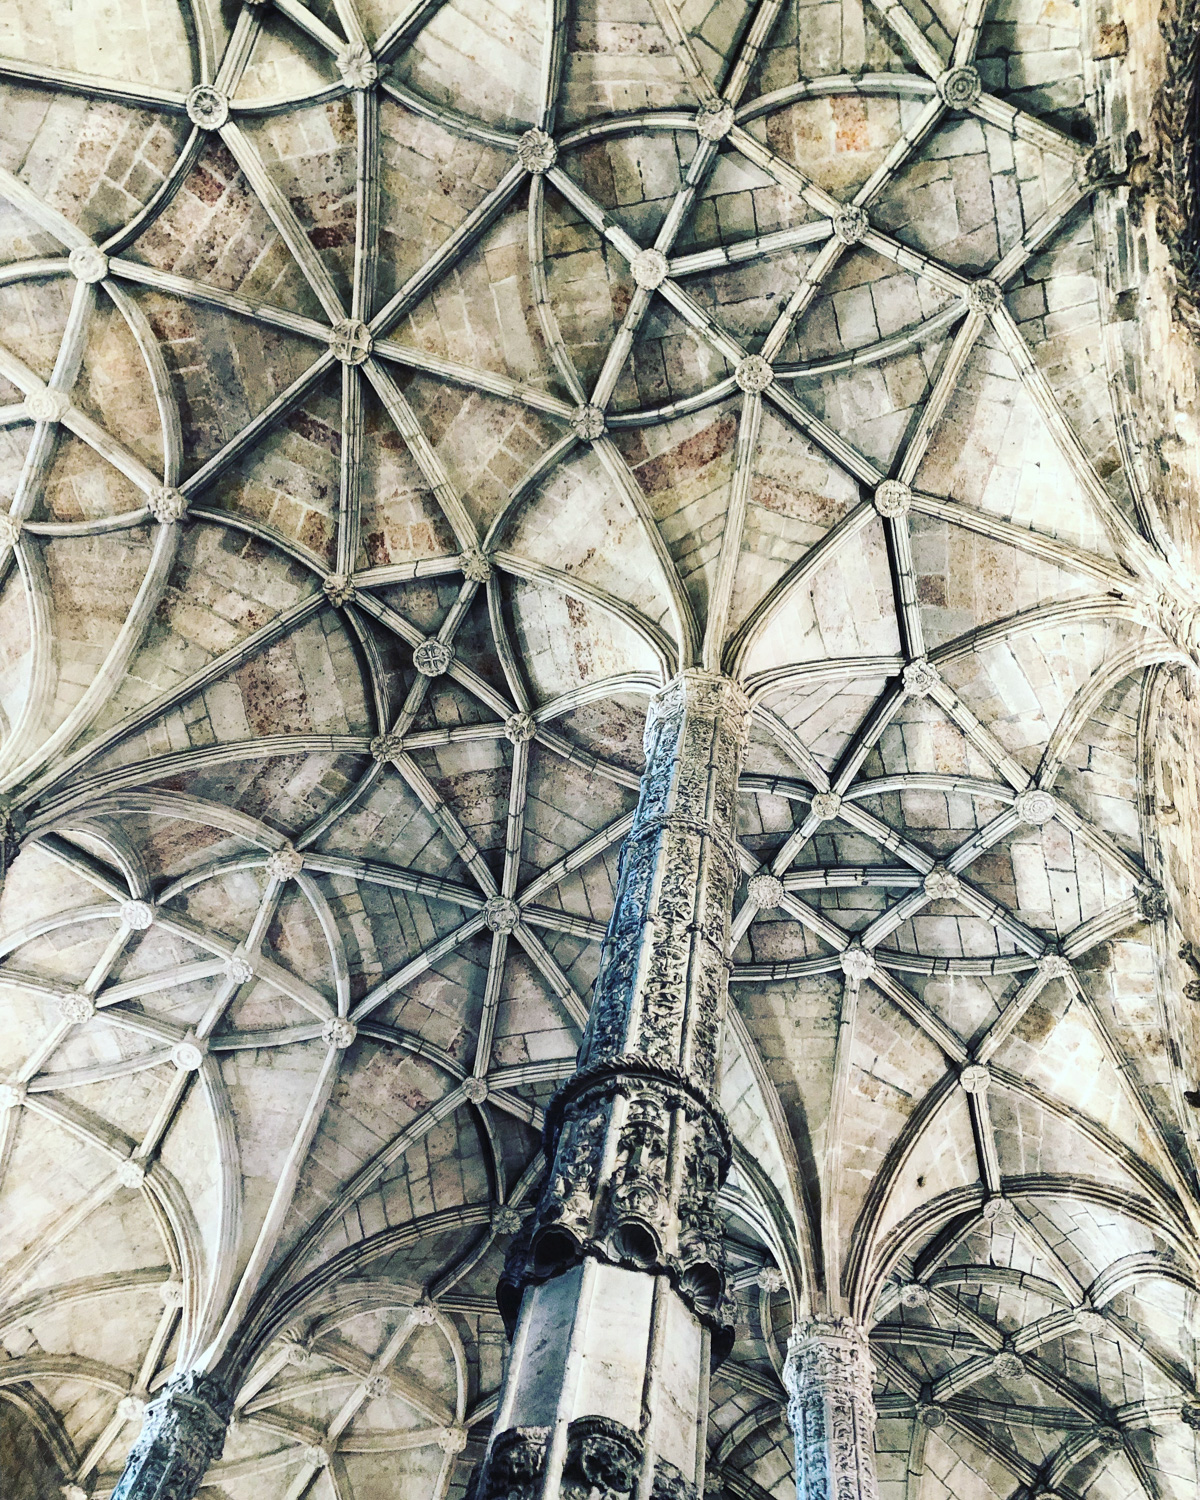 The roof of the San Jeronimos Monastery, Lisbon (Eat Me. Drink Me.)